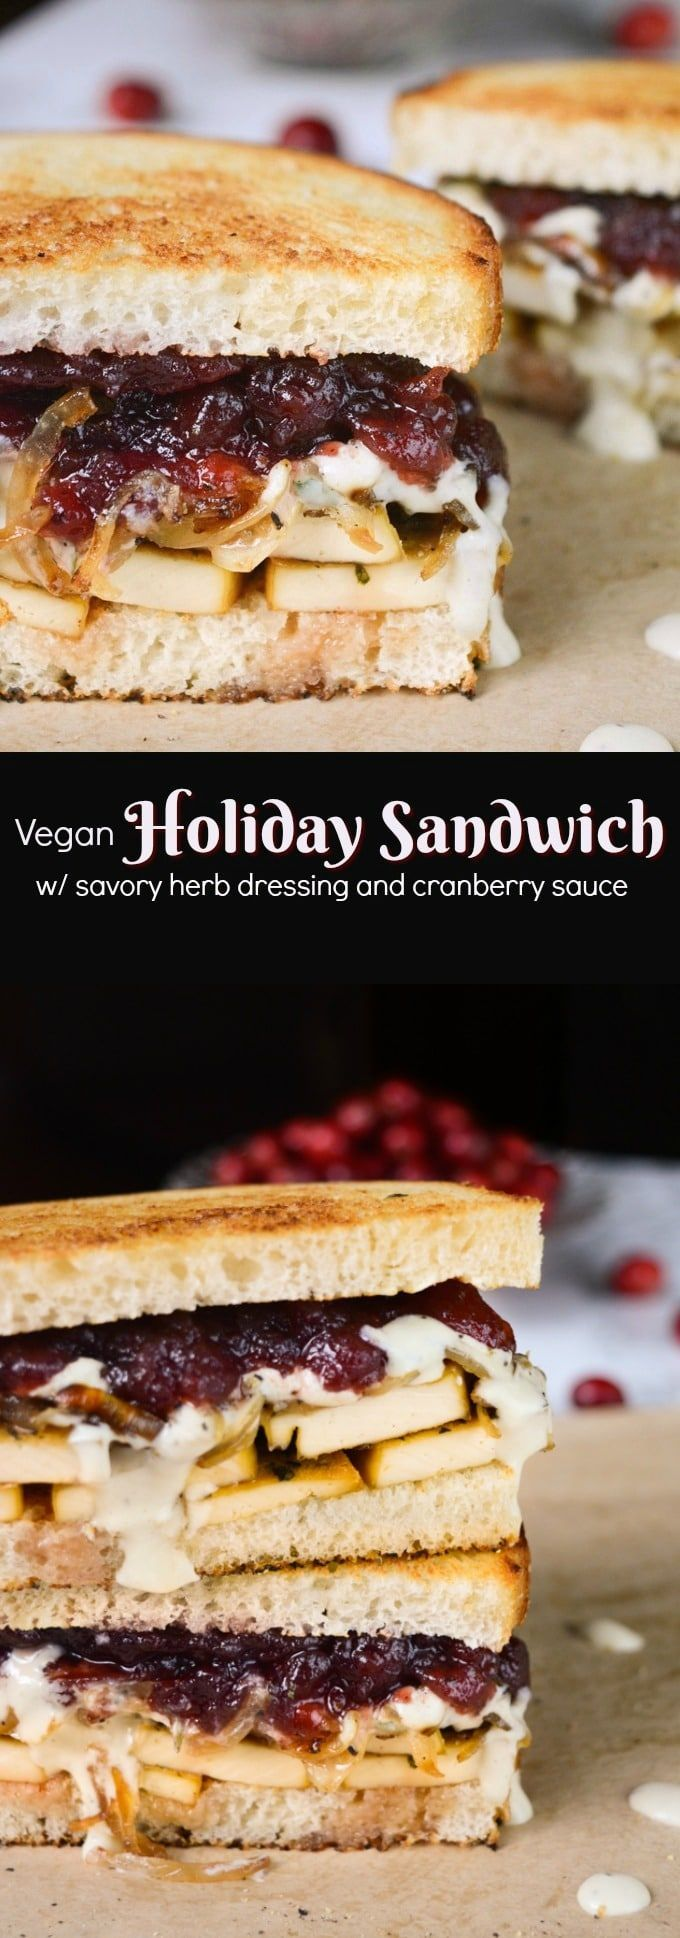 isn't your average vegan sandwich. It's a flavor packed vegan holiday sandwich brought together by an herb and cranberry taste reminiscent of the holidays. The taste is so classic you would never know this sandwich was vegan!